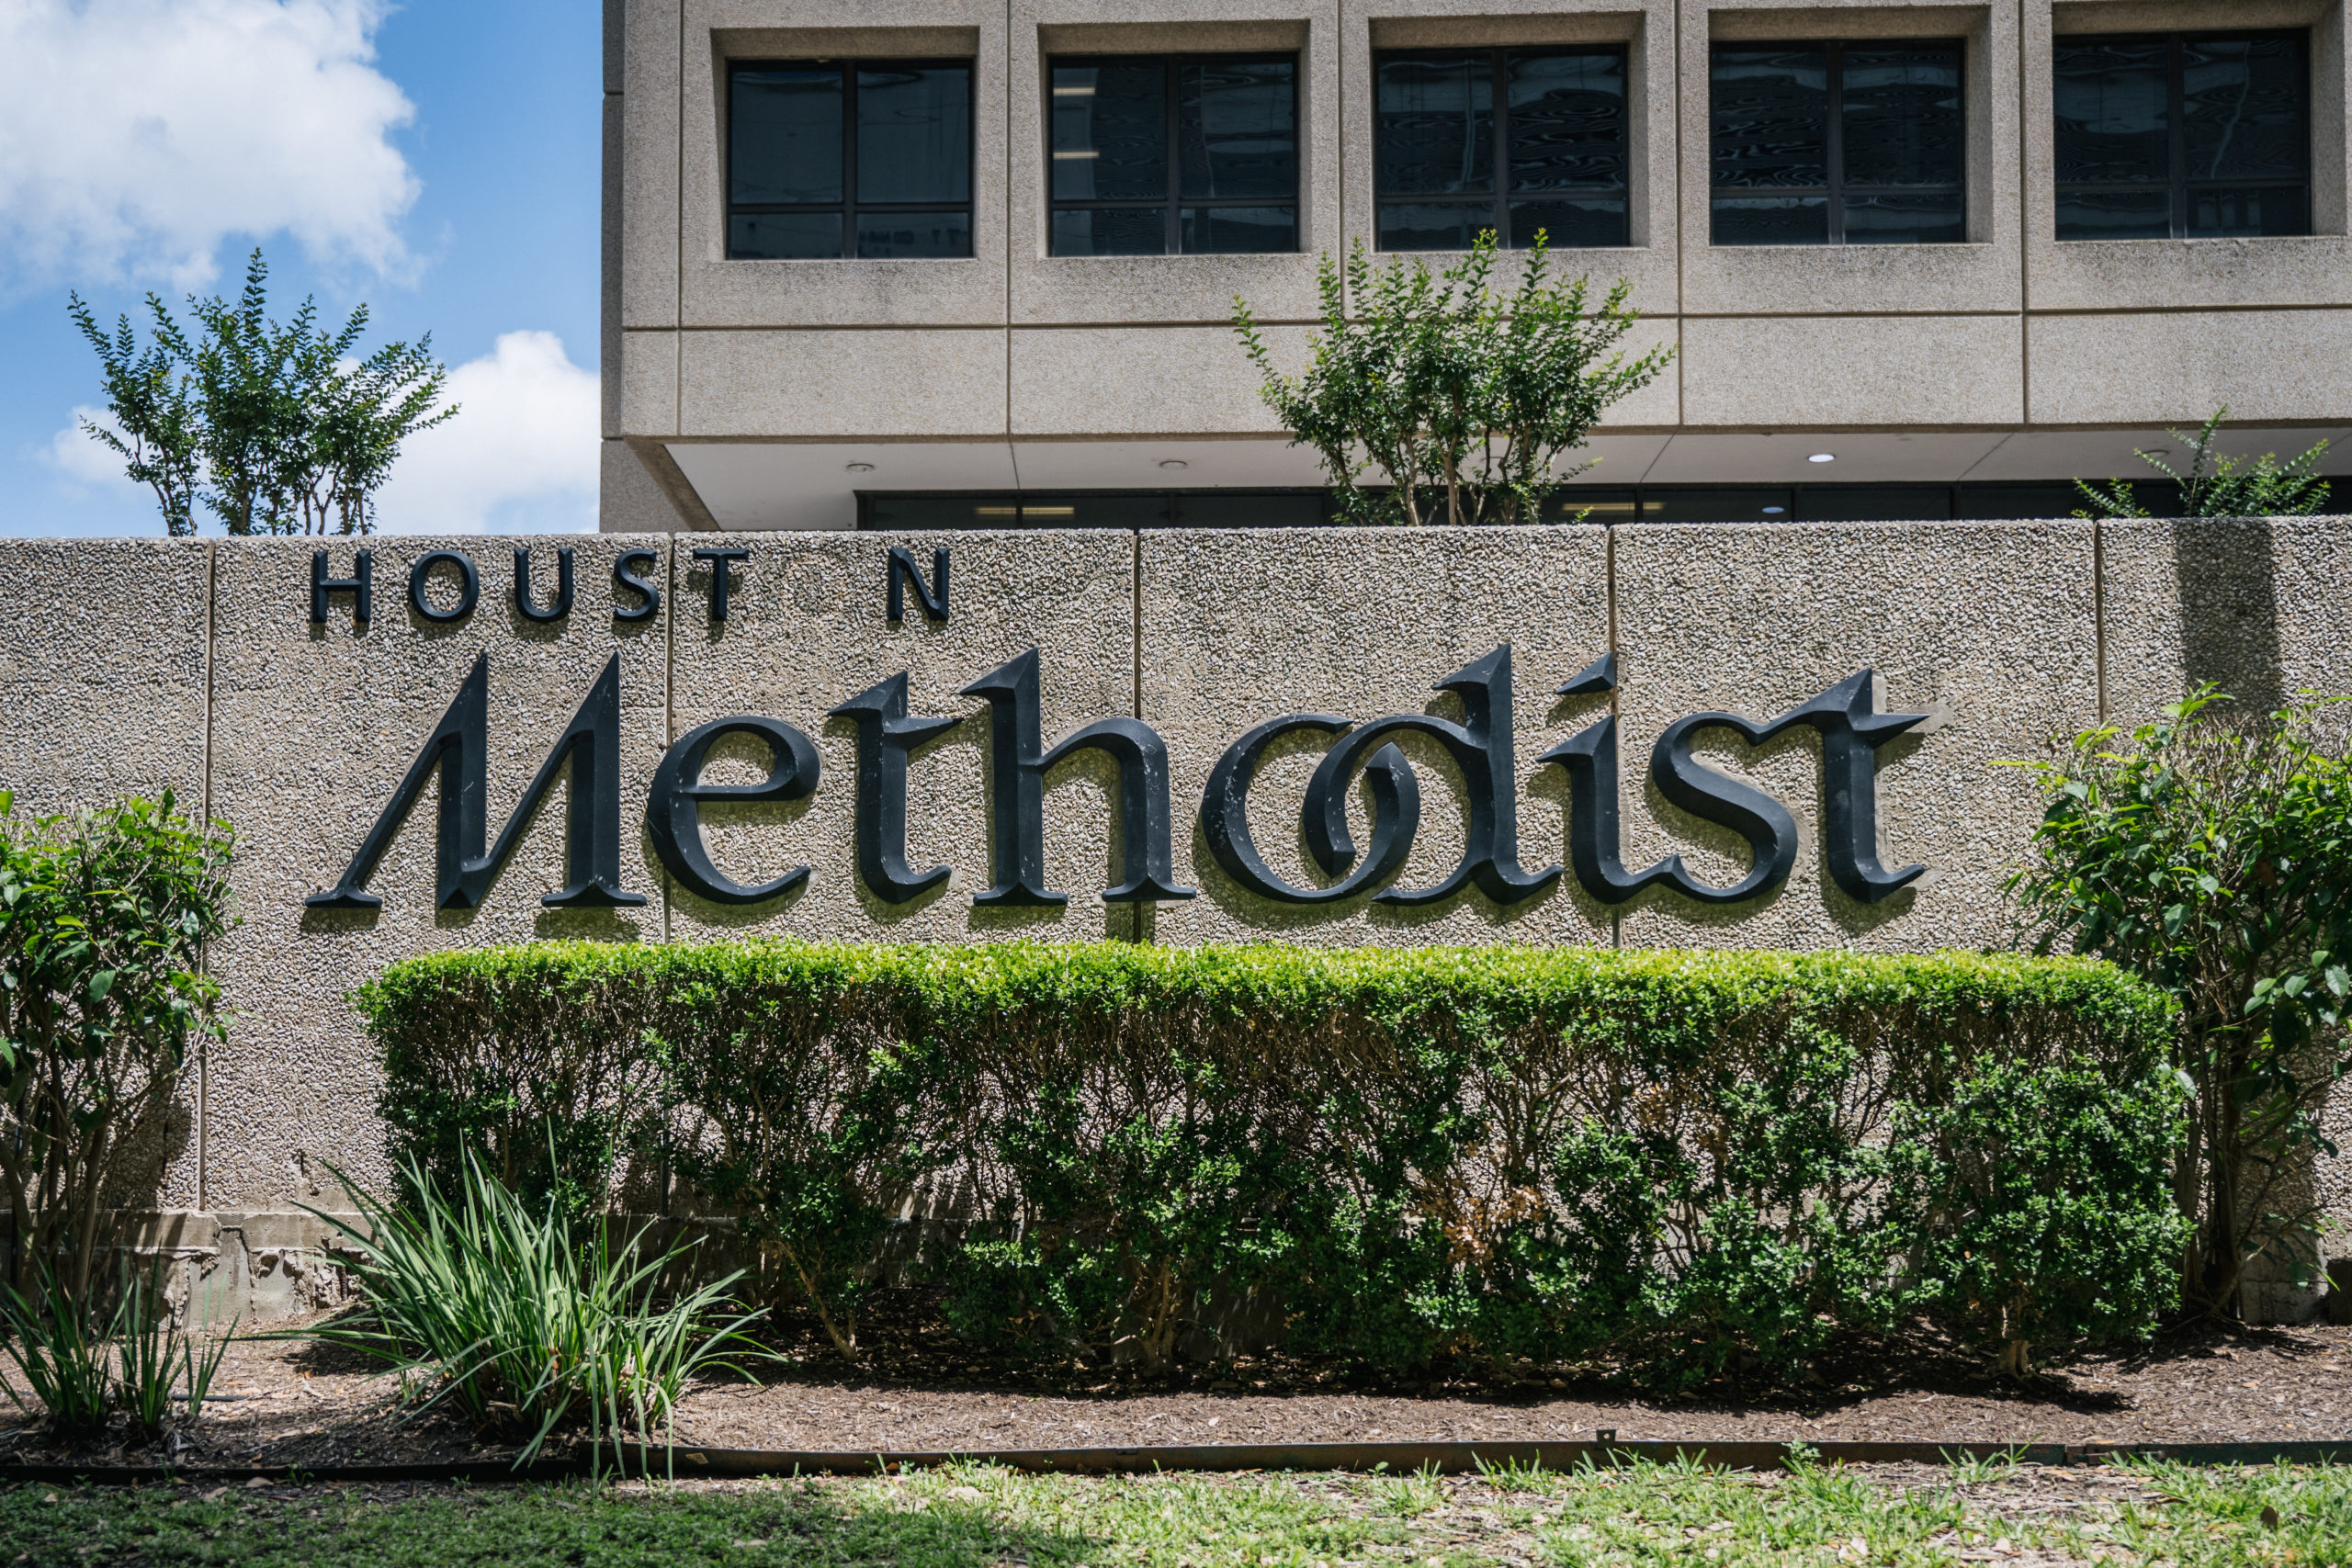 HOUSTON, TEXAS - JUNE 09: The exterior of the Houston Methodist Hospital is seen on June 09, 2021 in Houston, Texas. Houston Methodist Hospital has suspended 178 employees without pay for 14 days for their refusal to comply with its COVID-19 vaccine requirement. (Photo by Brandon Bell/Getty Images)